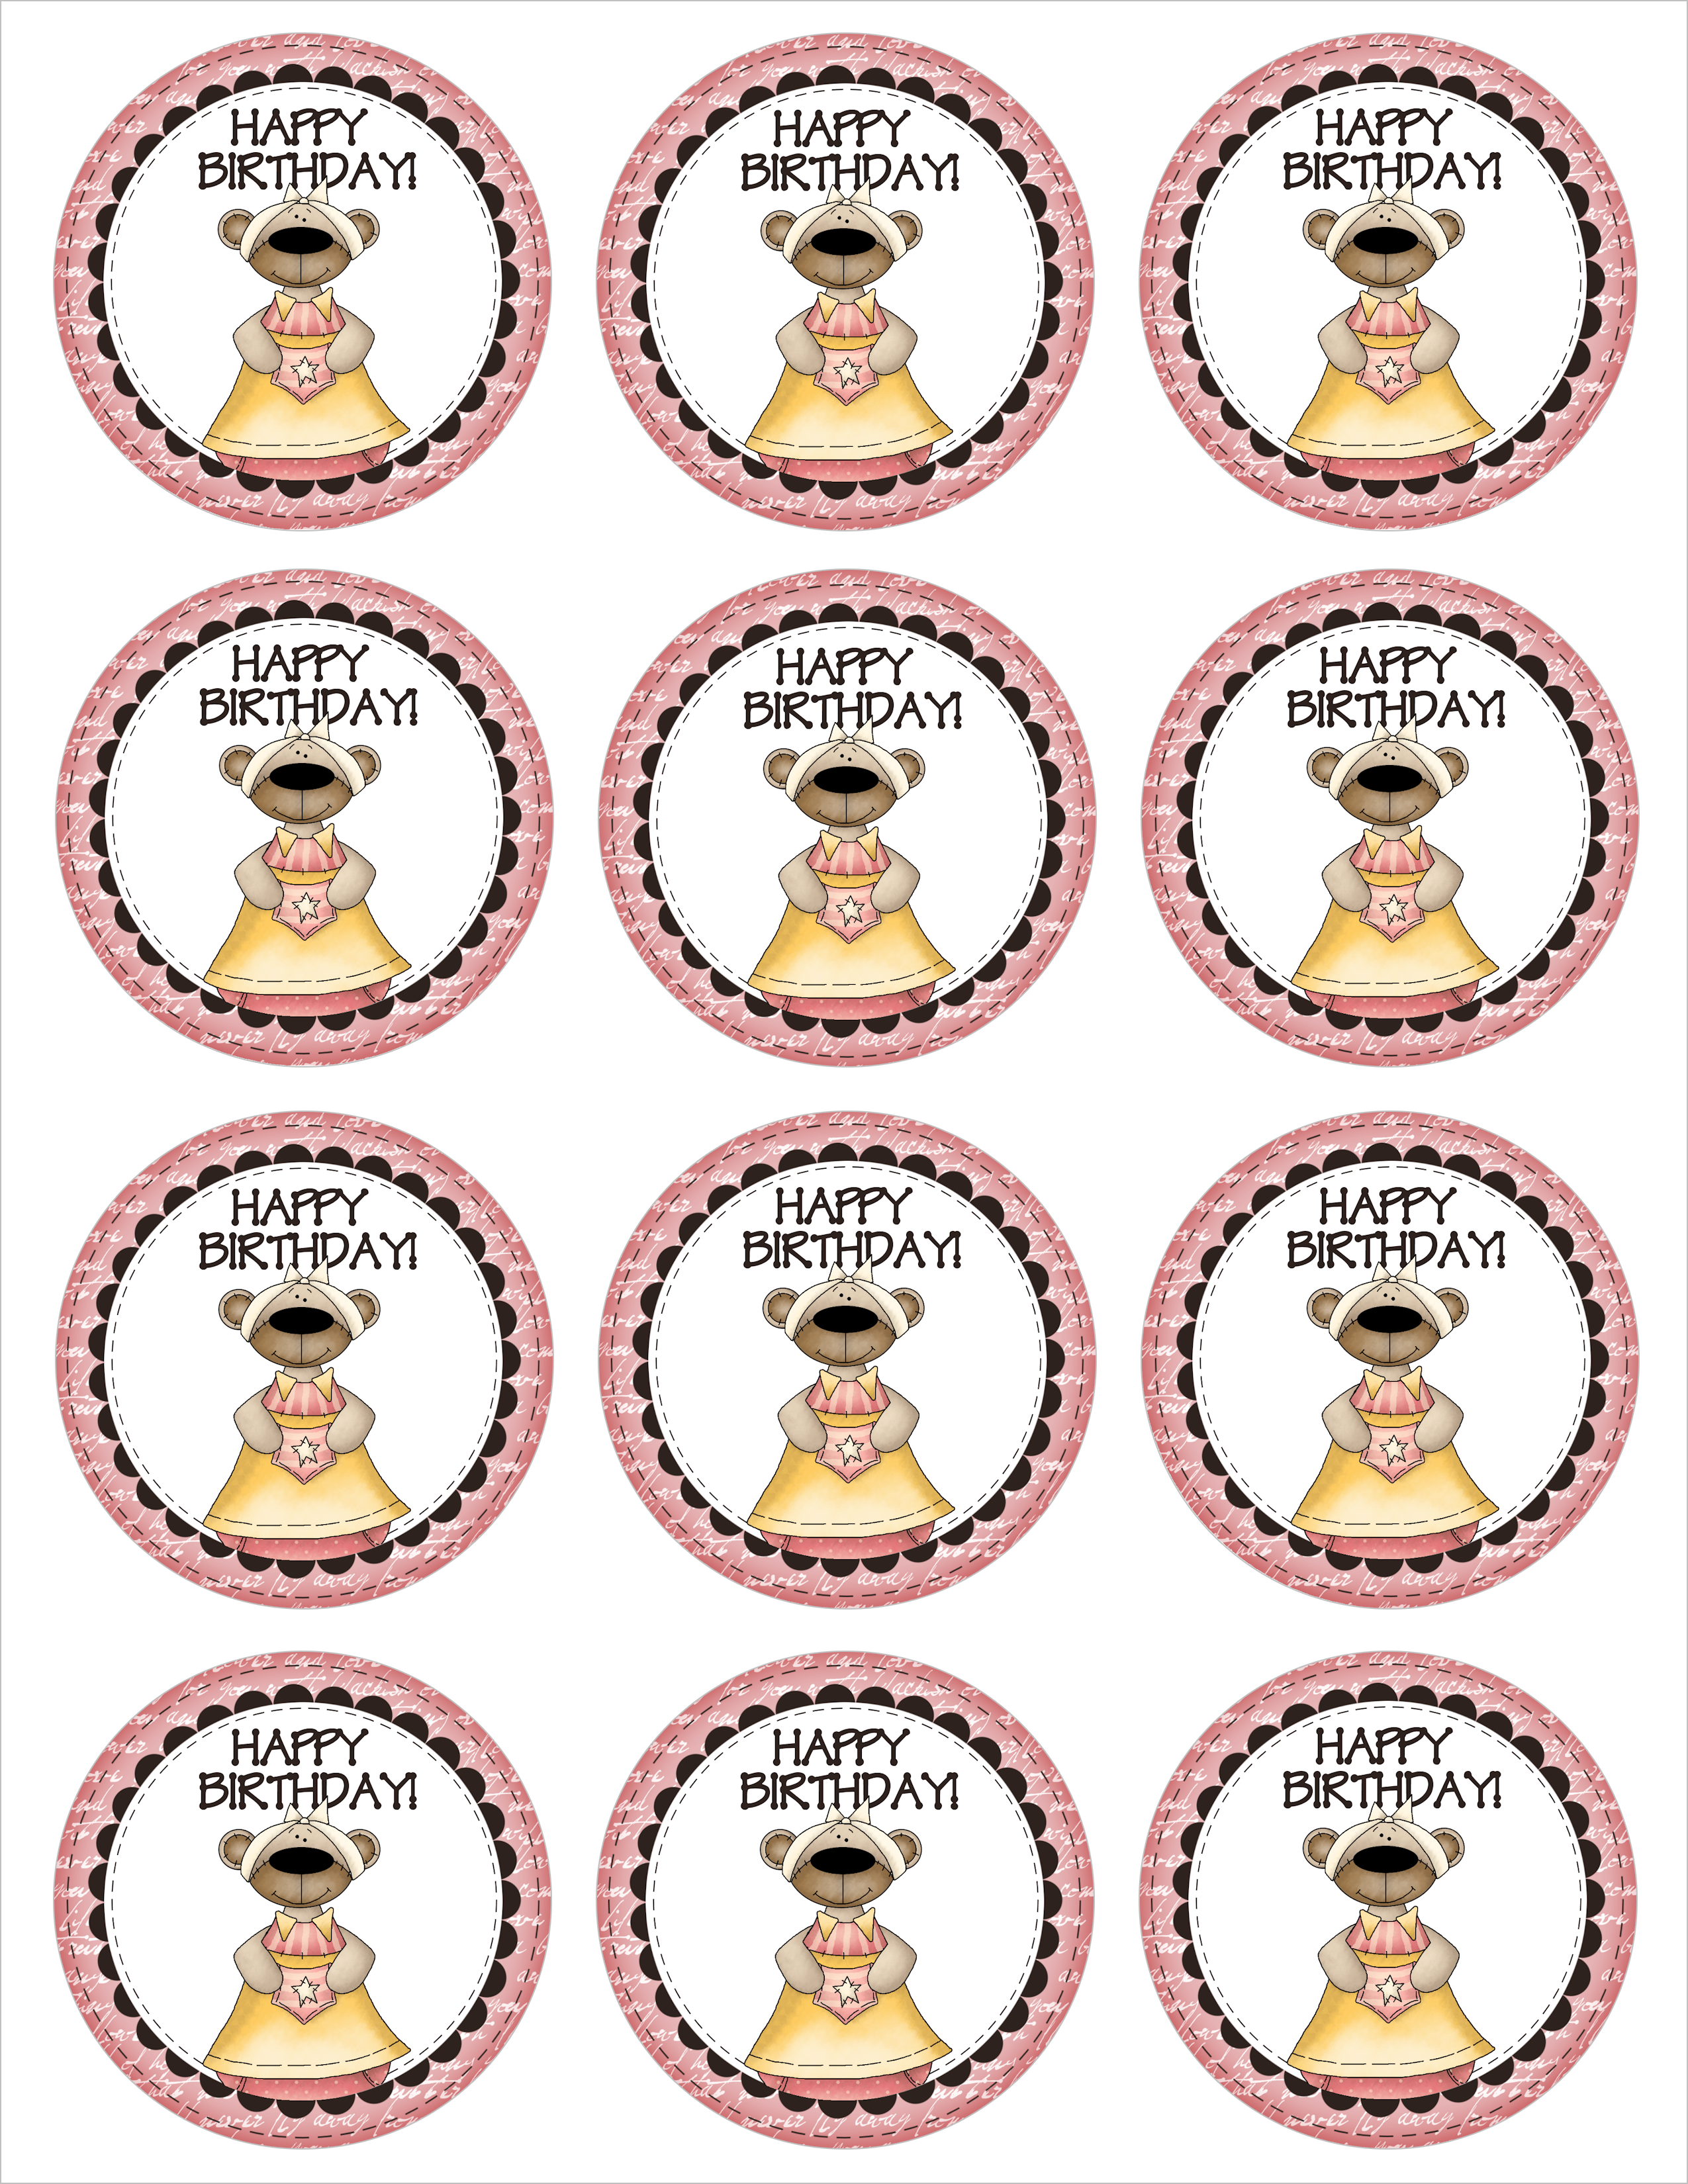 Happy Birthday Cupcake Toppers Printables ~ Birthday cupcake toppers free printables